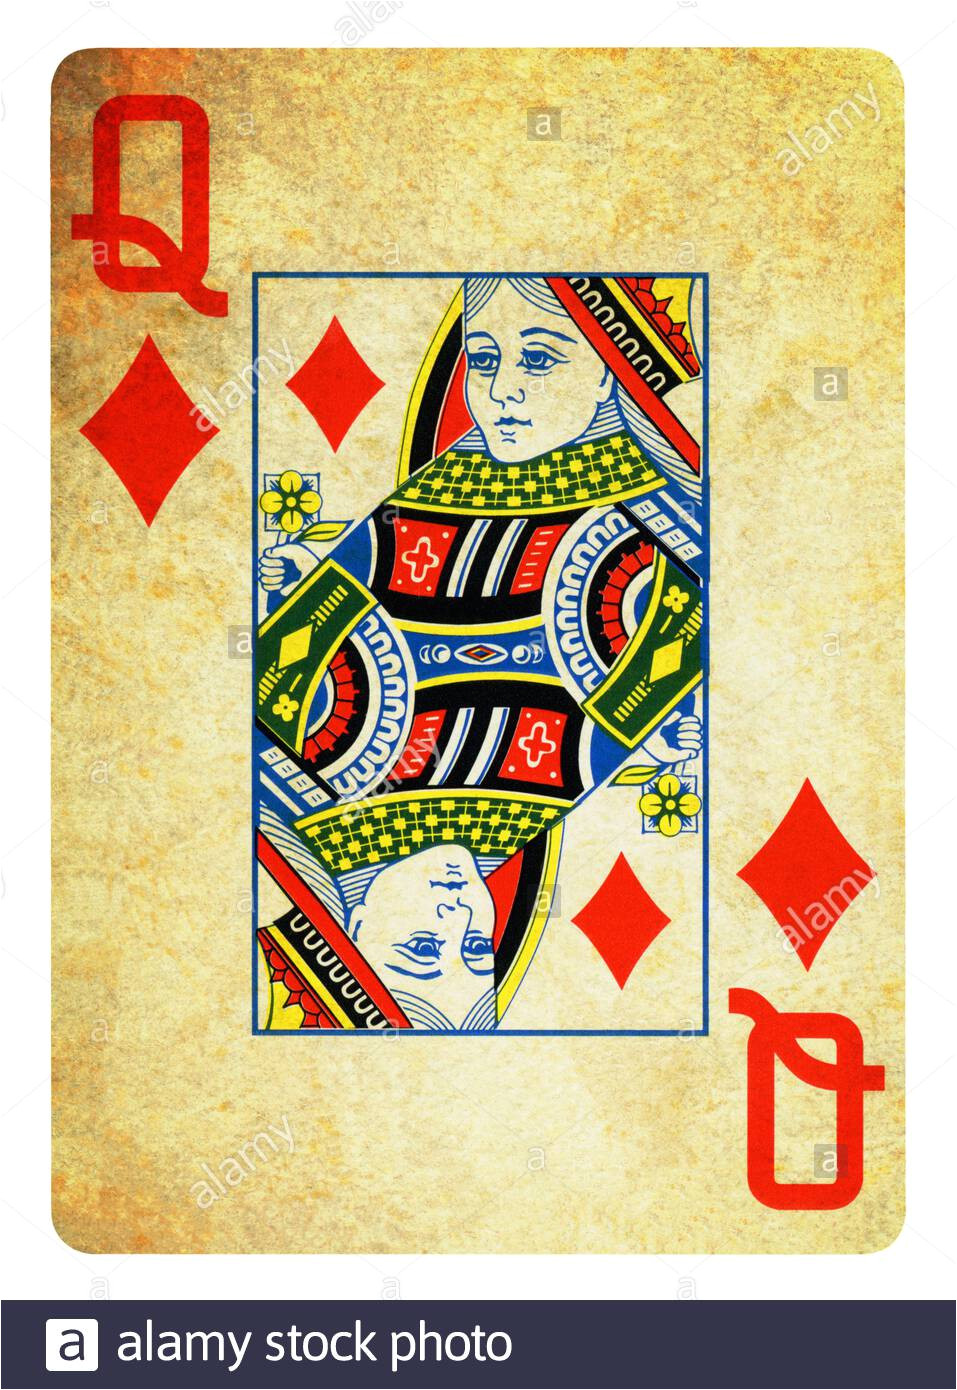 queen of diamonds vintage playing card isolated on white clipping path included 2agwf7w jpg